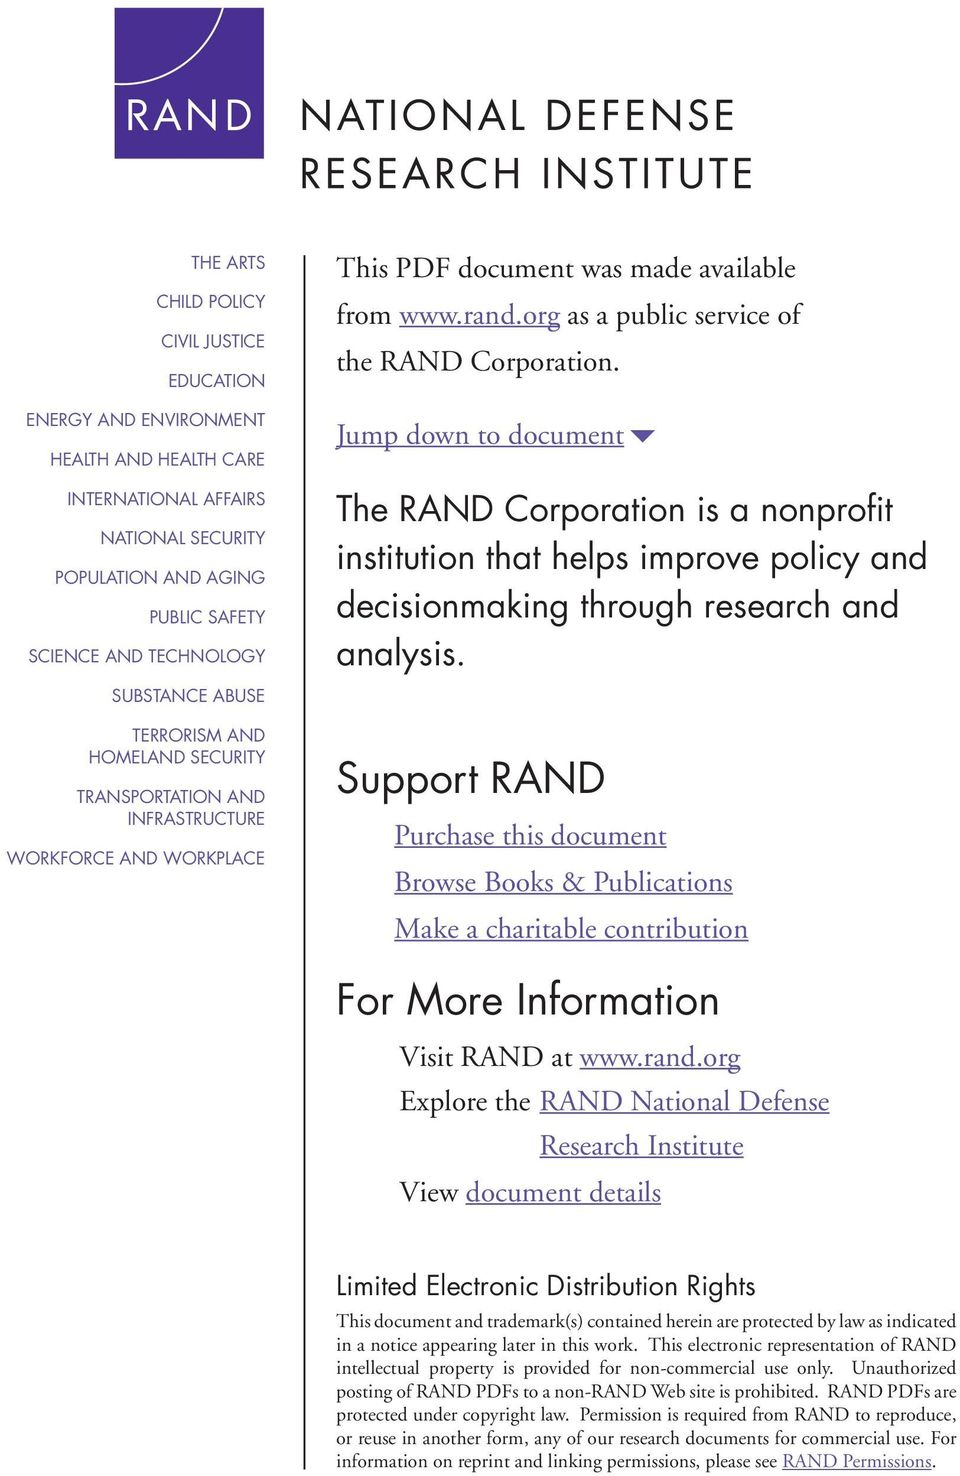 Jump down to document6 The RAND Corporation is a nonprofit institution that helps improve policy and decisionmaking through research and analysis.